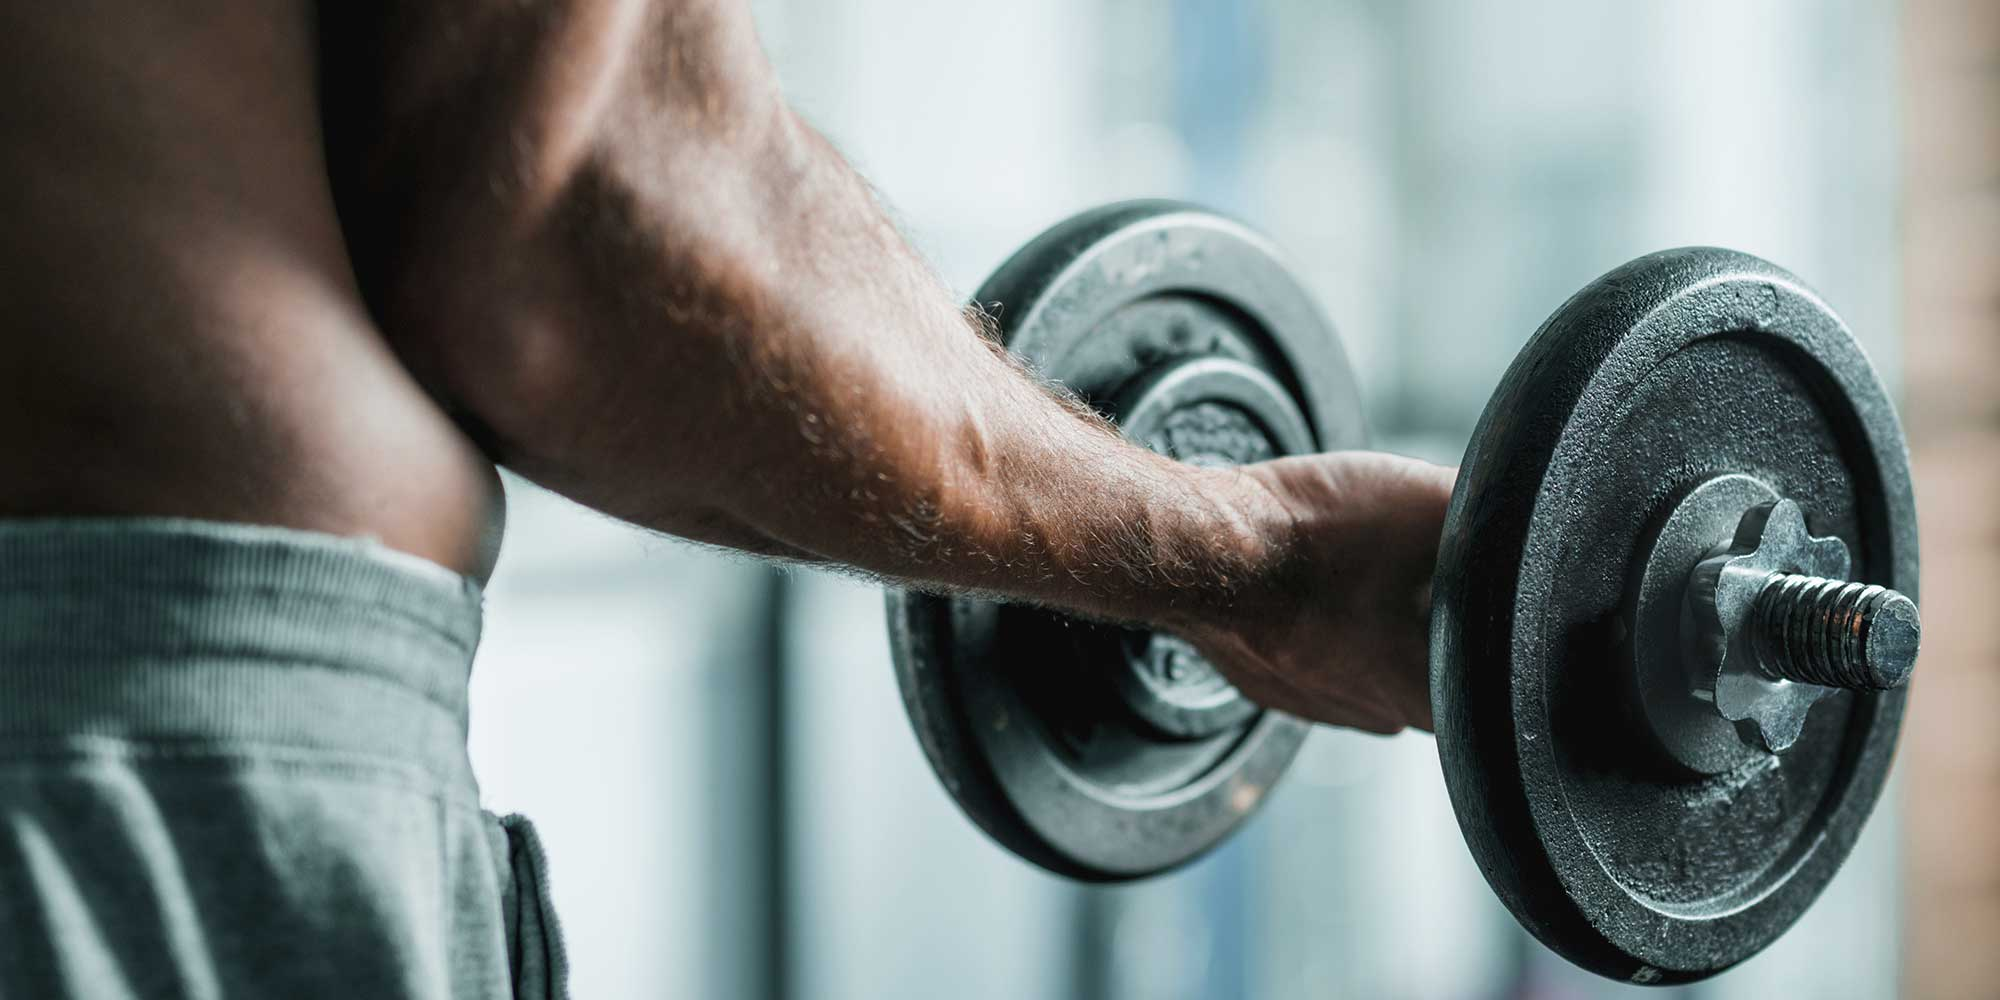 10 Unwritten Rules for the Gym (that people often break)